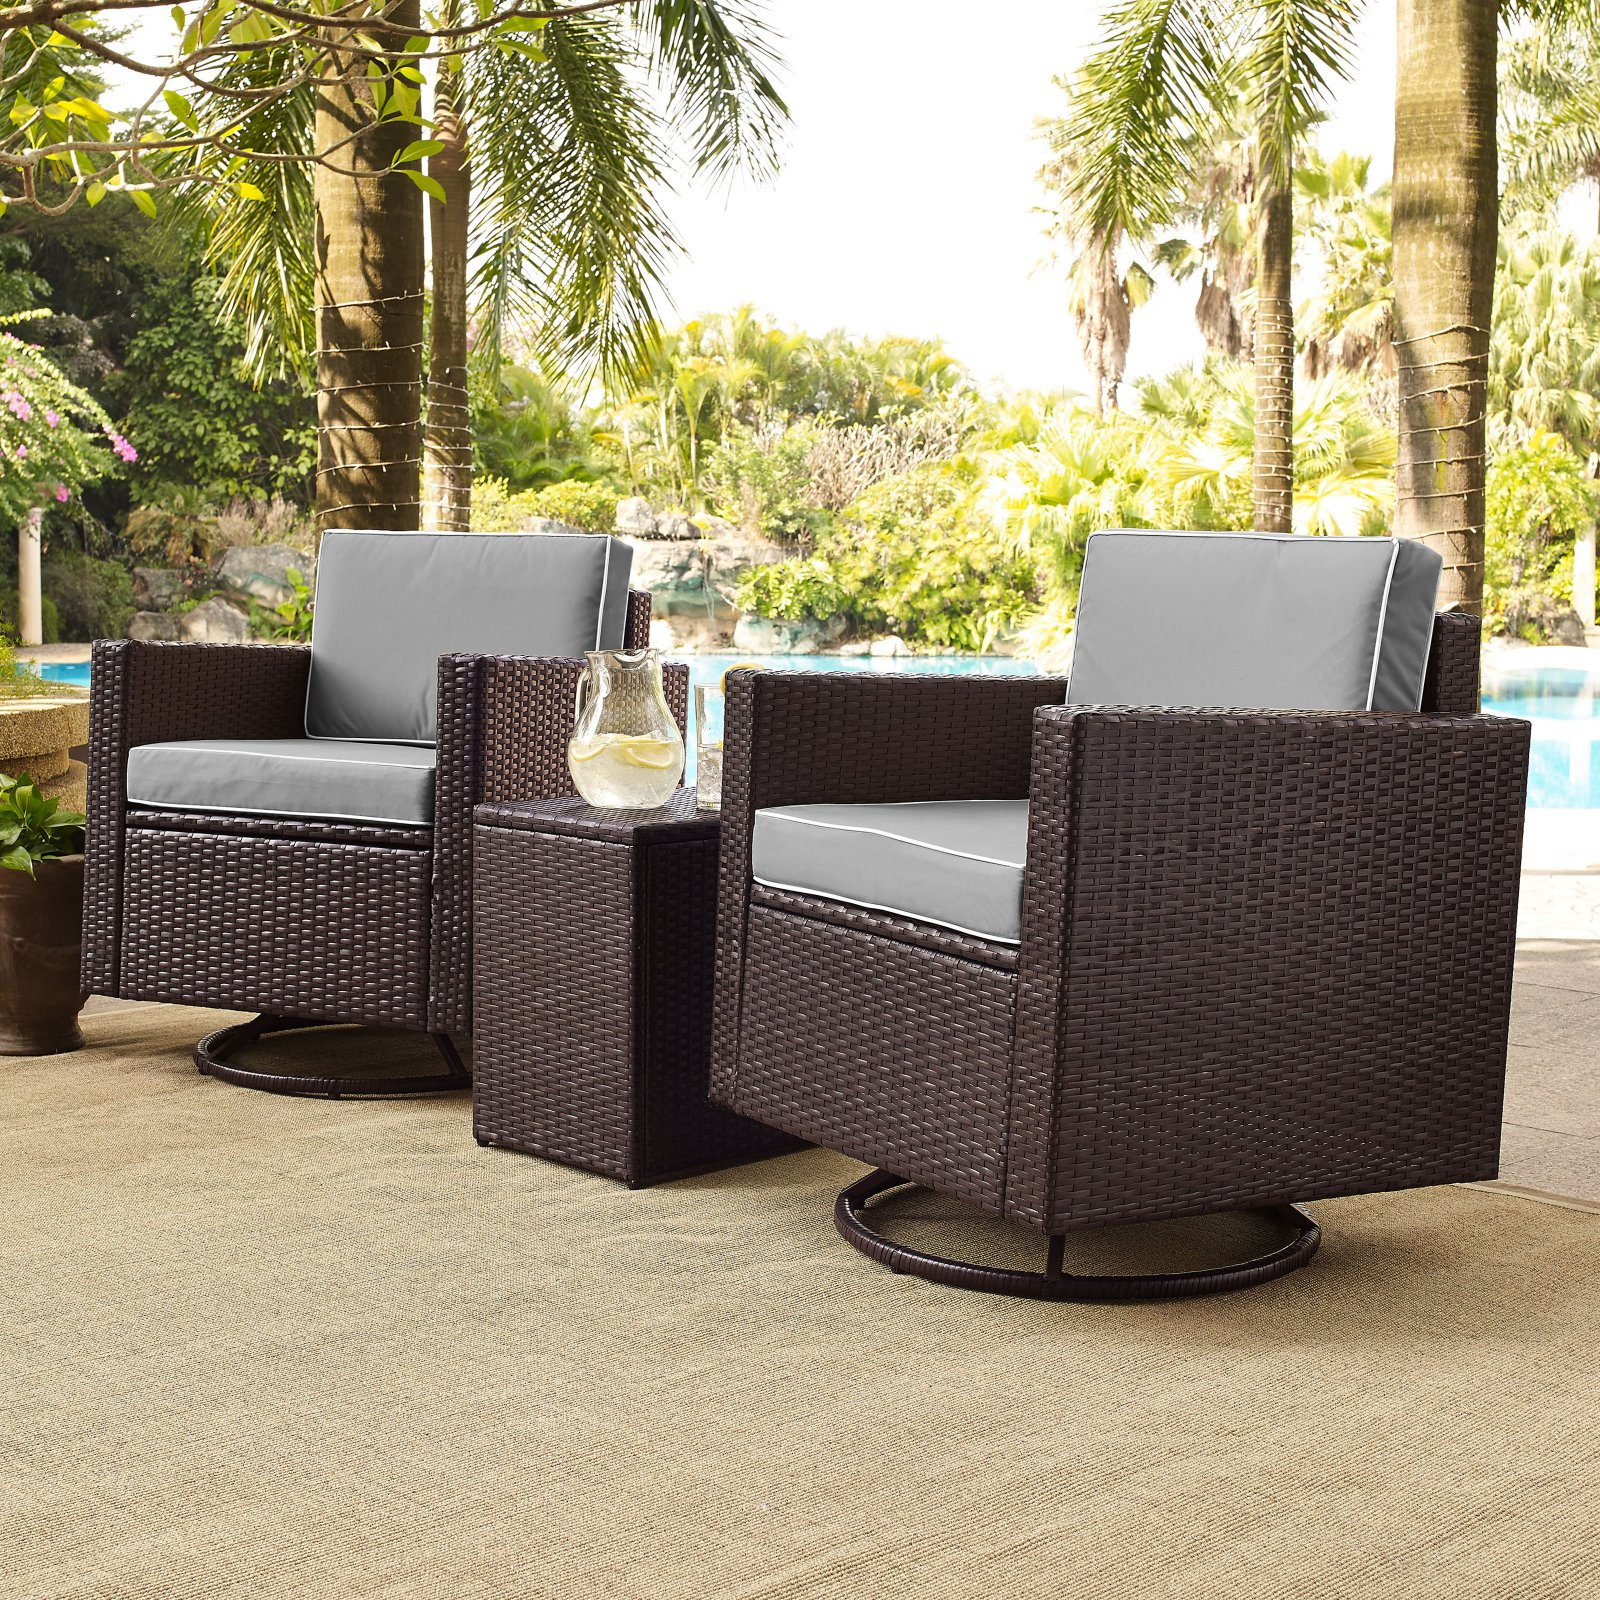 table with swivel chairs swing chair lazada malaysia palm harbor 3 piece outdoor wicker conversation set grey cushions two side walmart com